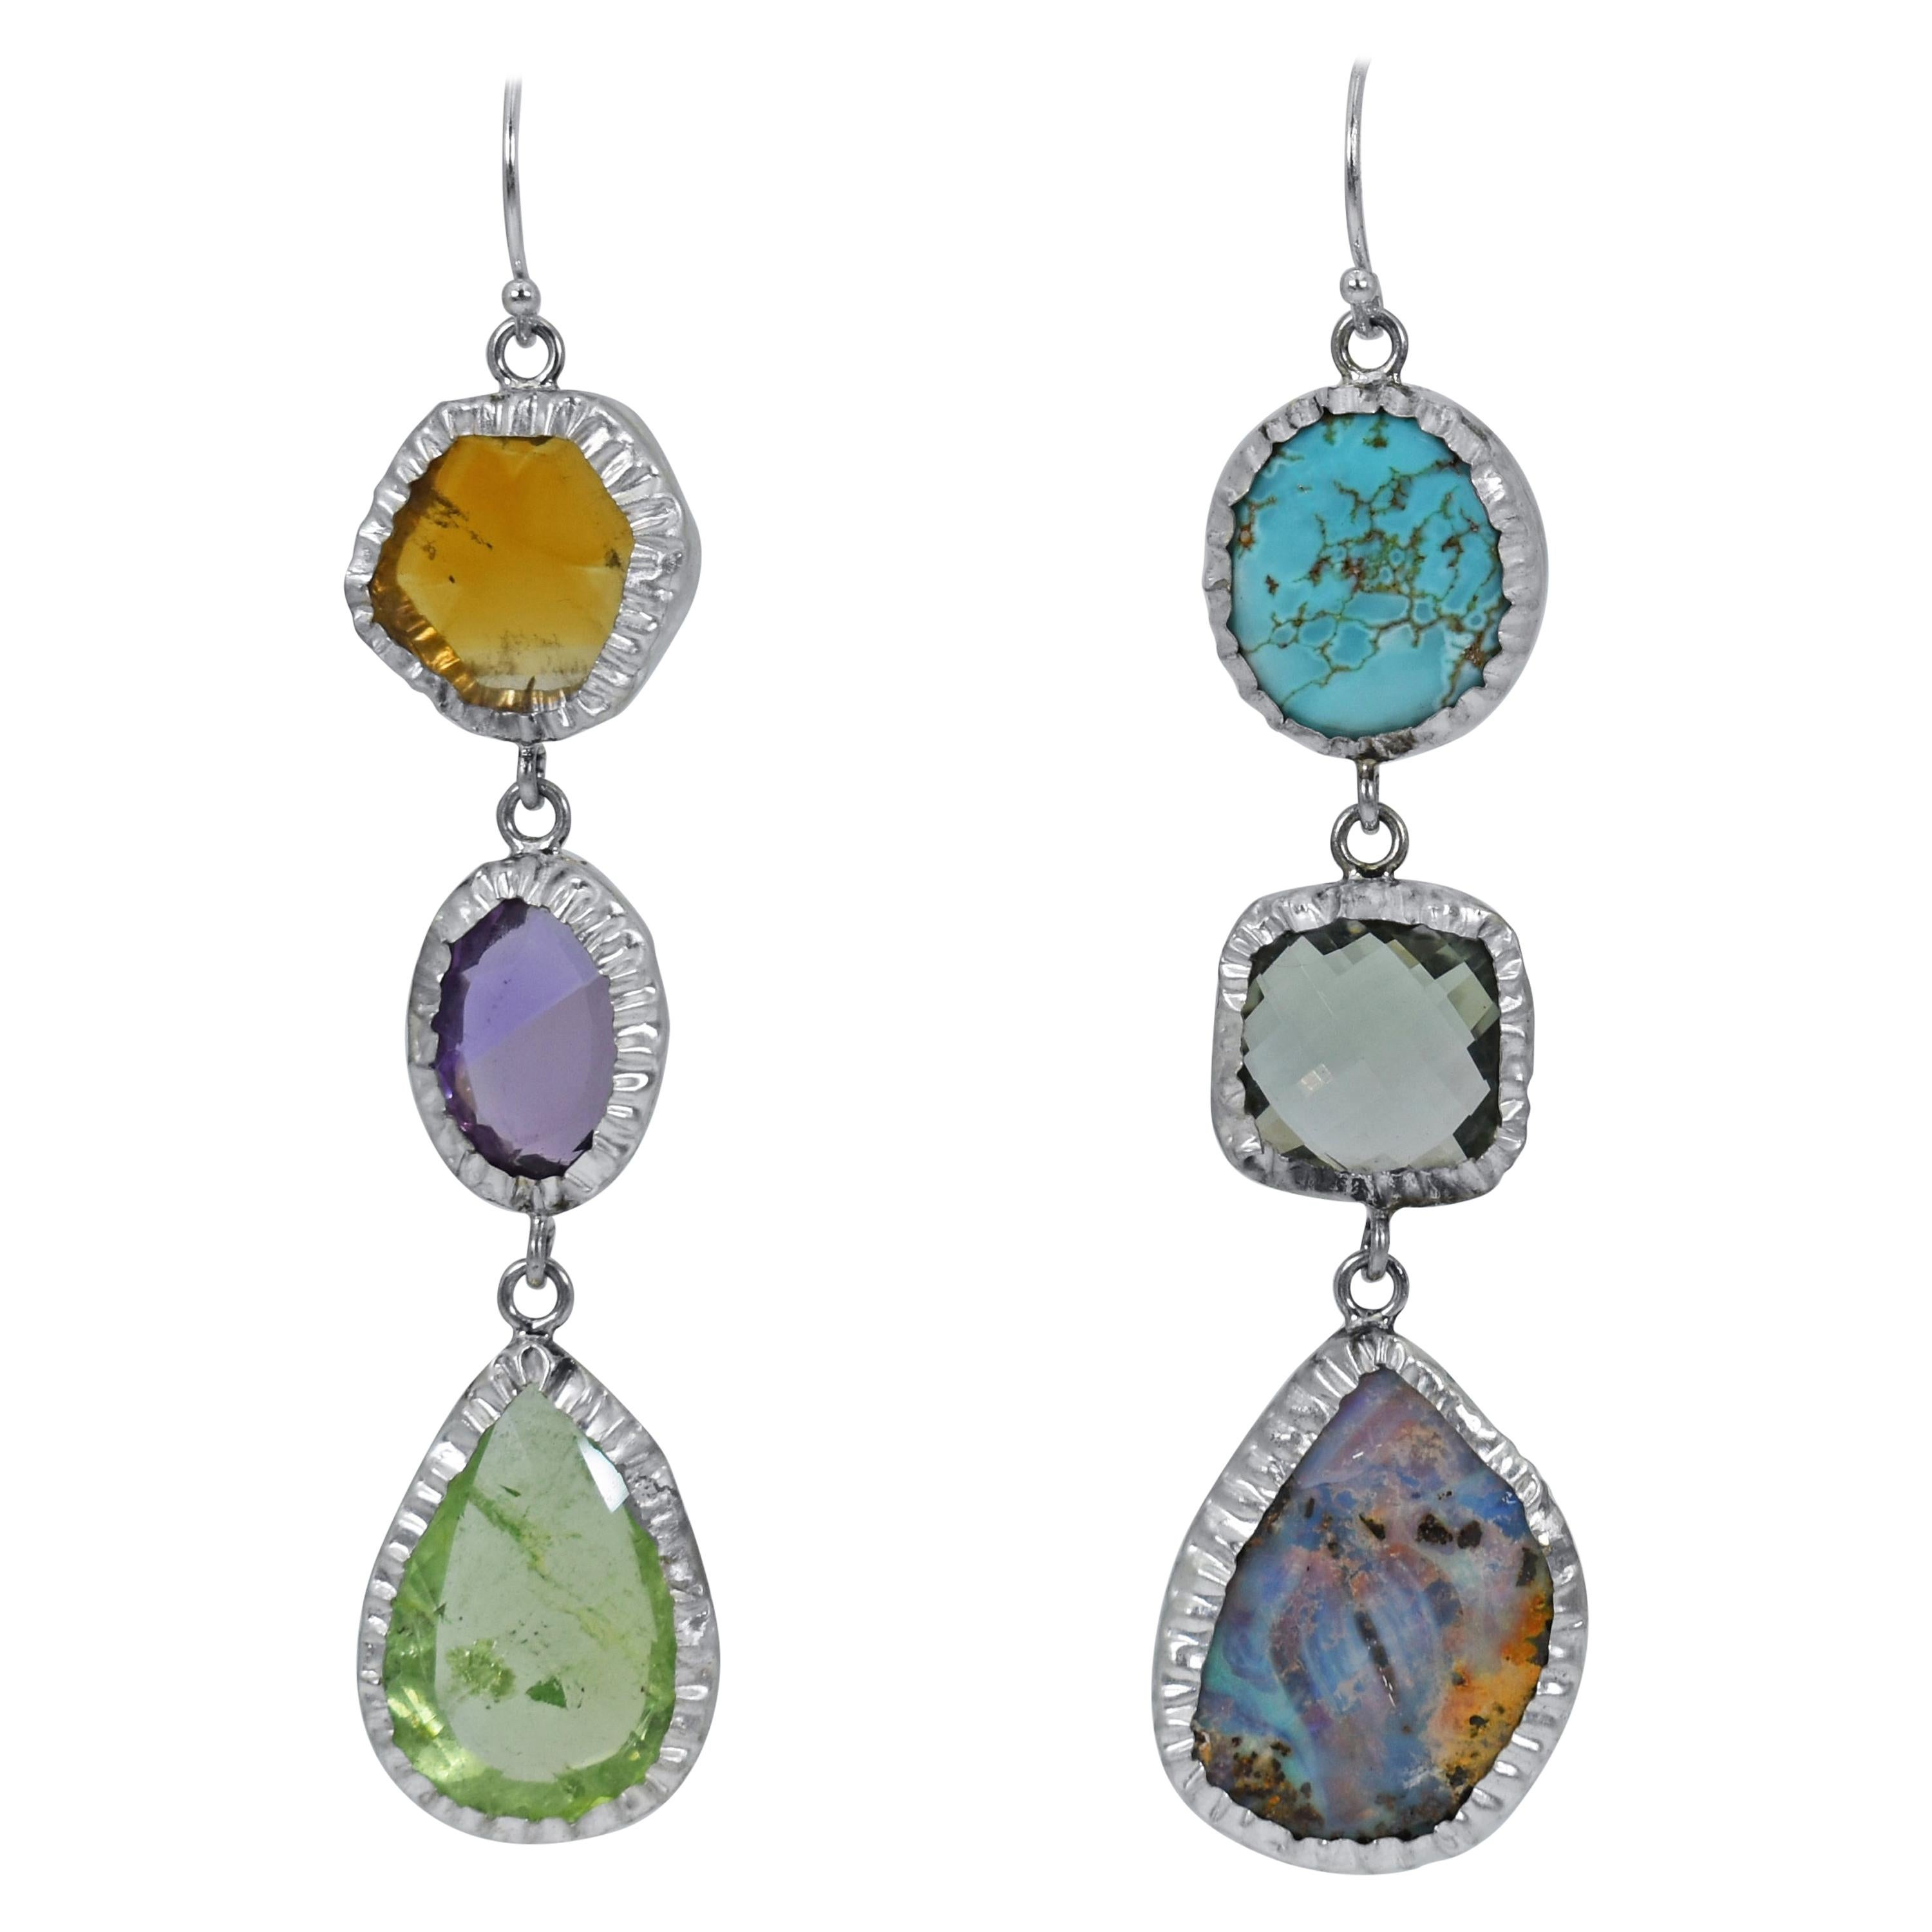 Citrine, Opal and Turquoise Sterling Silver Asymmetrical Dangle Earrings